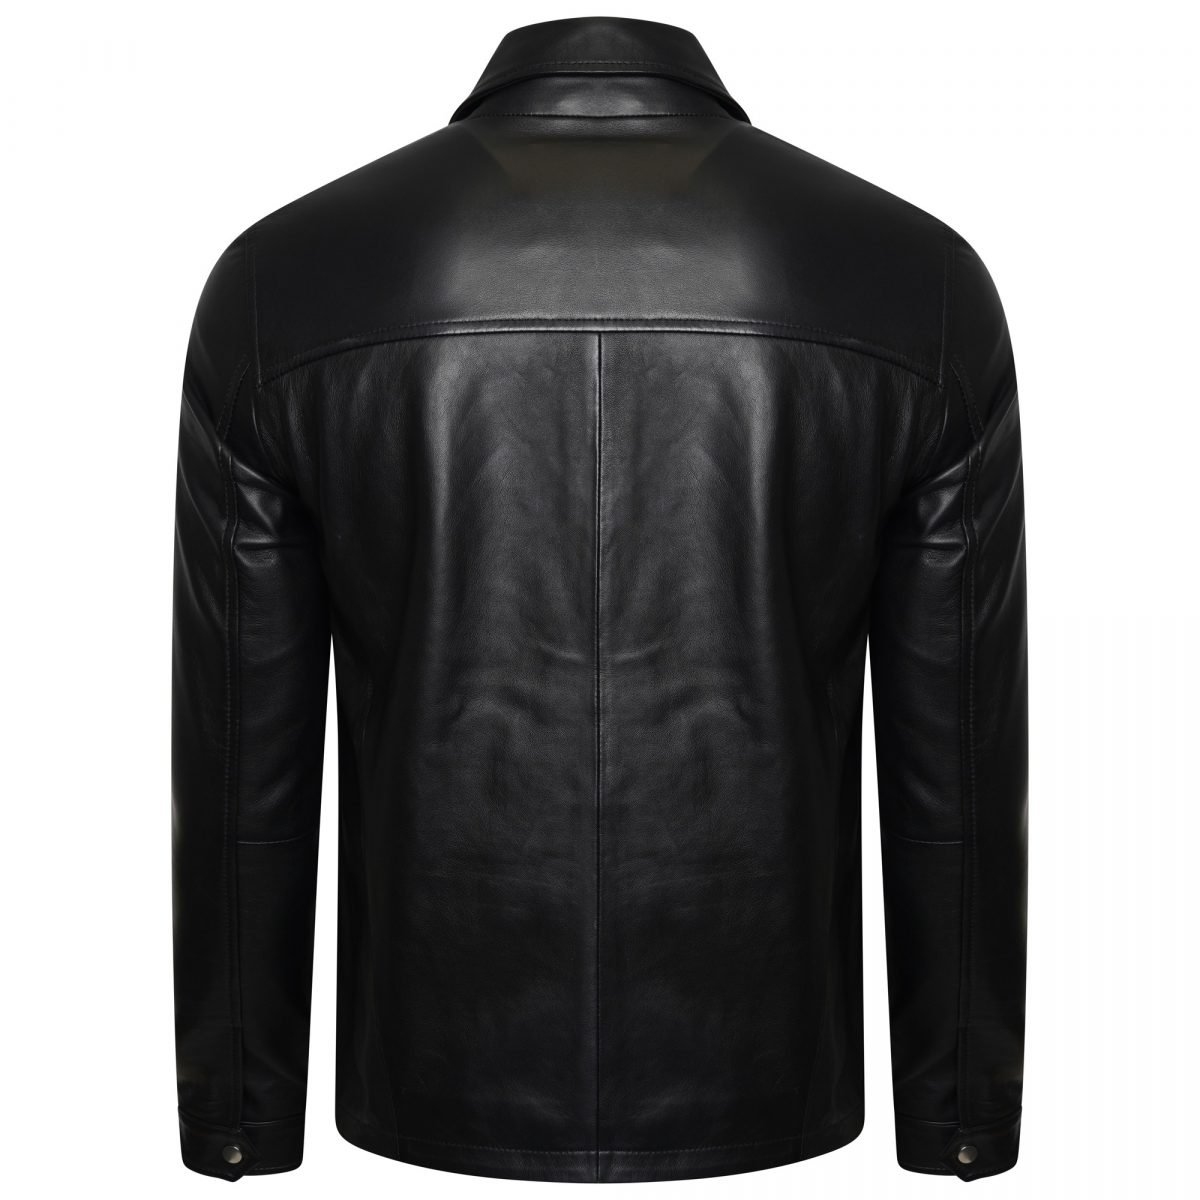 Image displays the men's real leather trucker jacket form the back on an invisible mannequin. You can see the simple leather paneling. The middle of the back has a seem running down it.